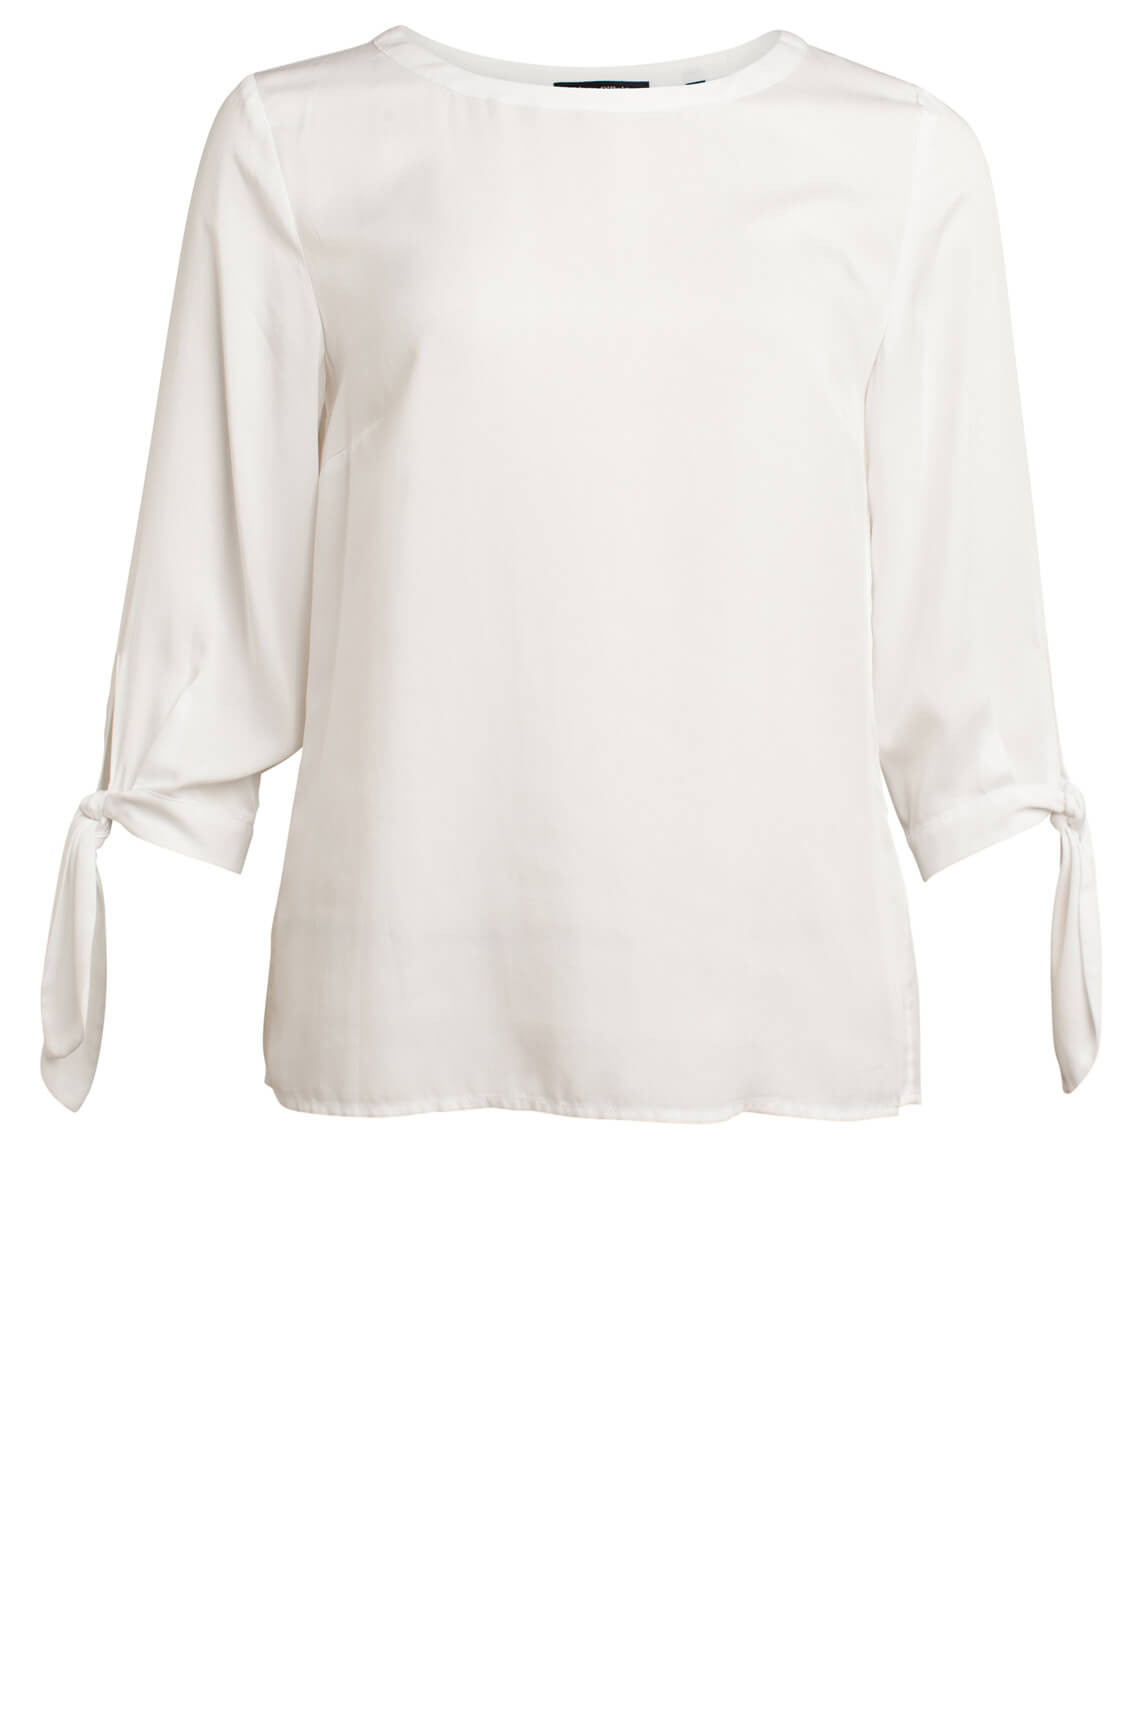 Marc O'Polo Dames Blouse met knoopdetail wit